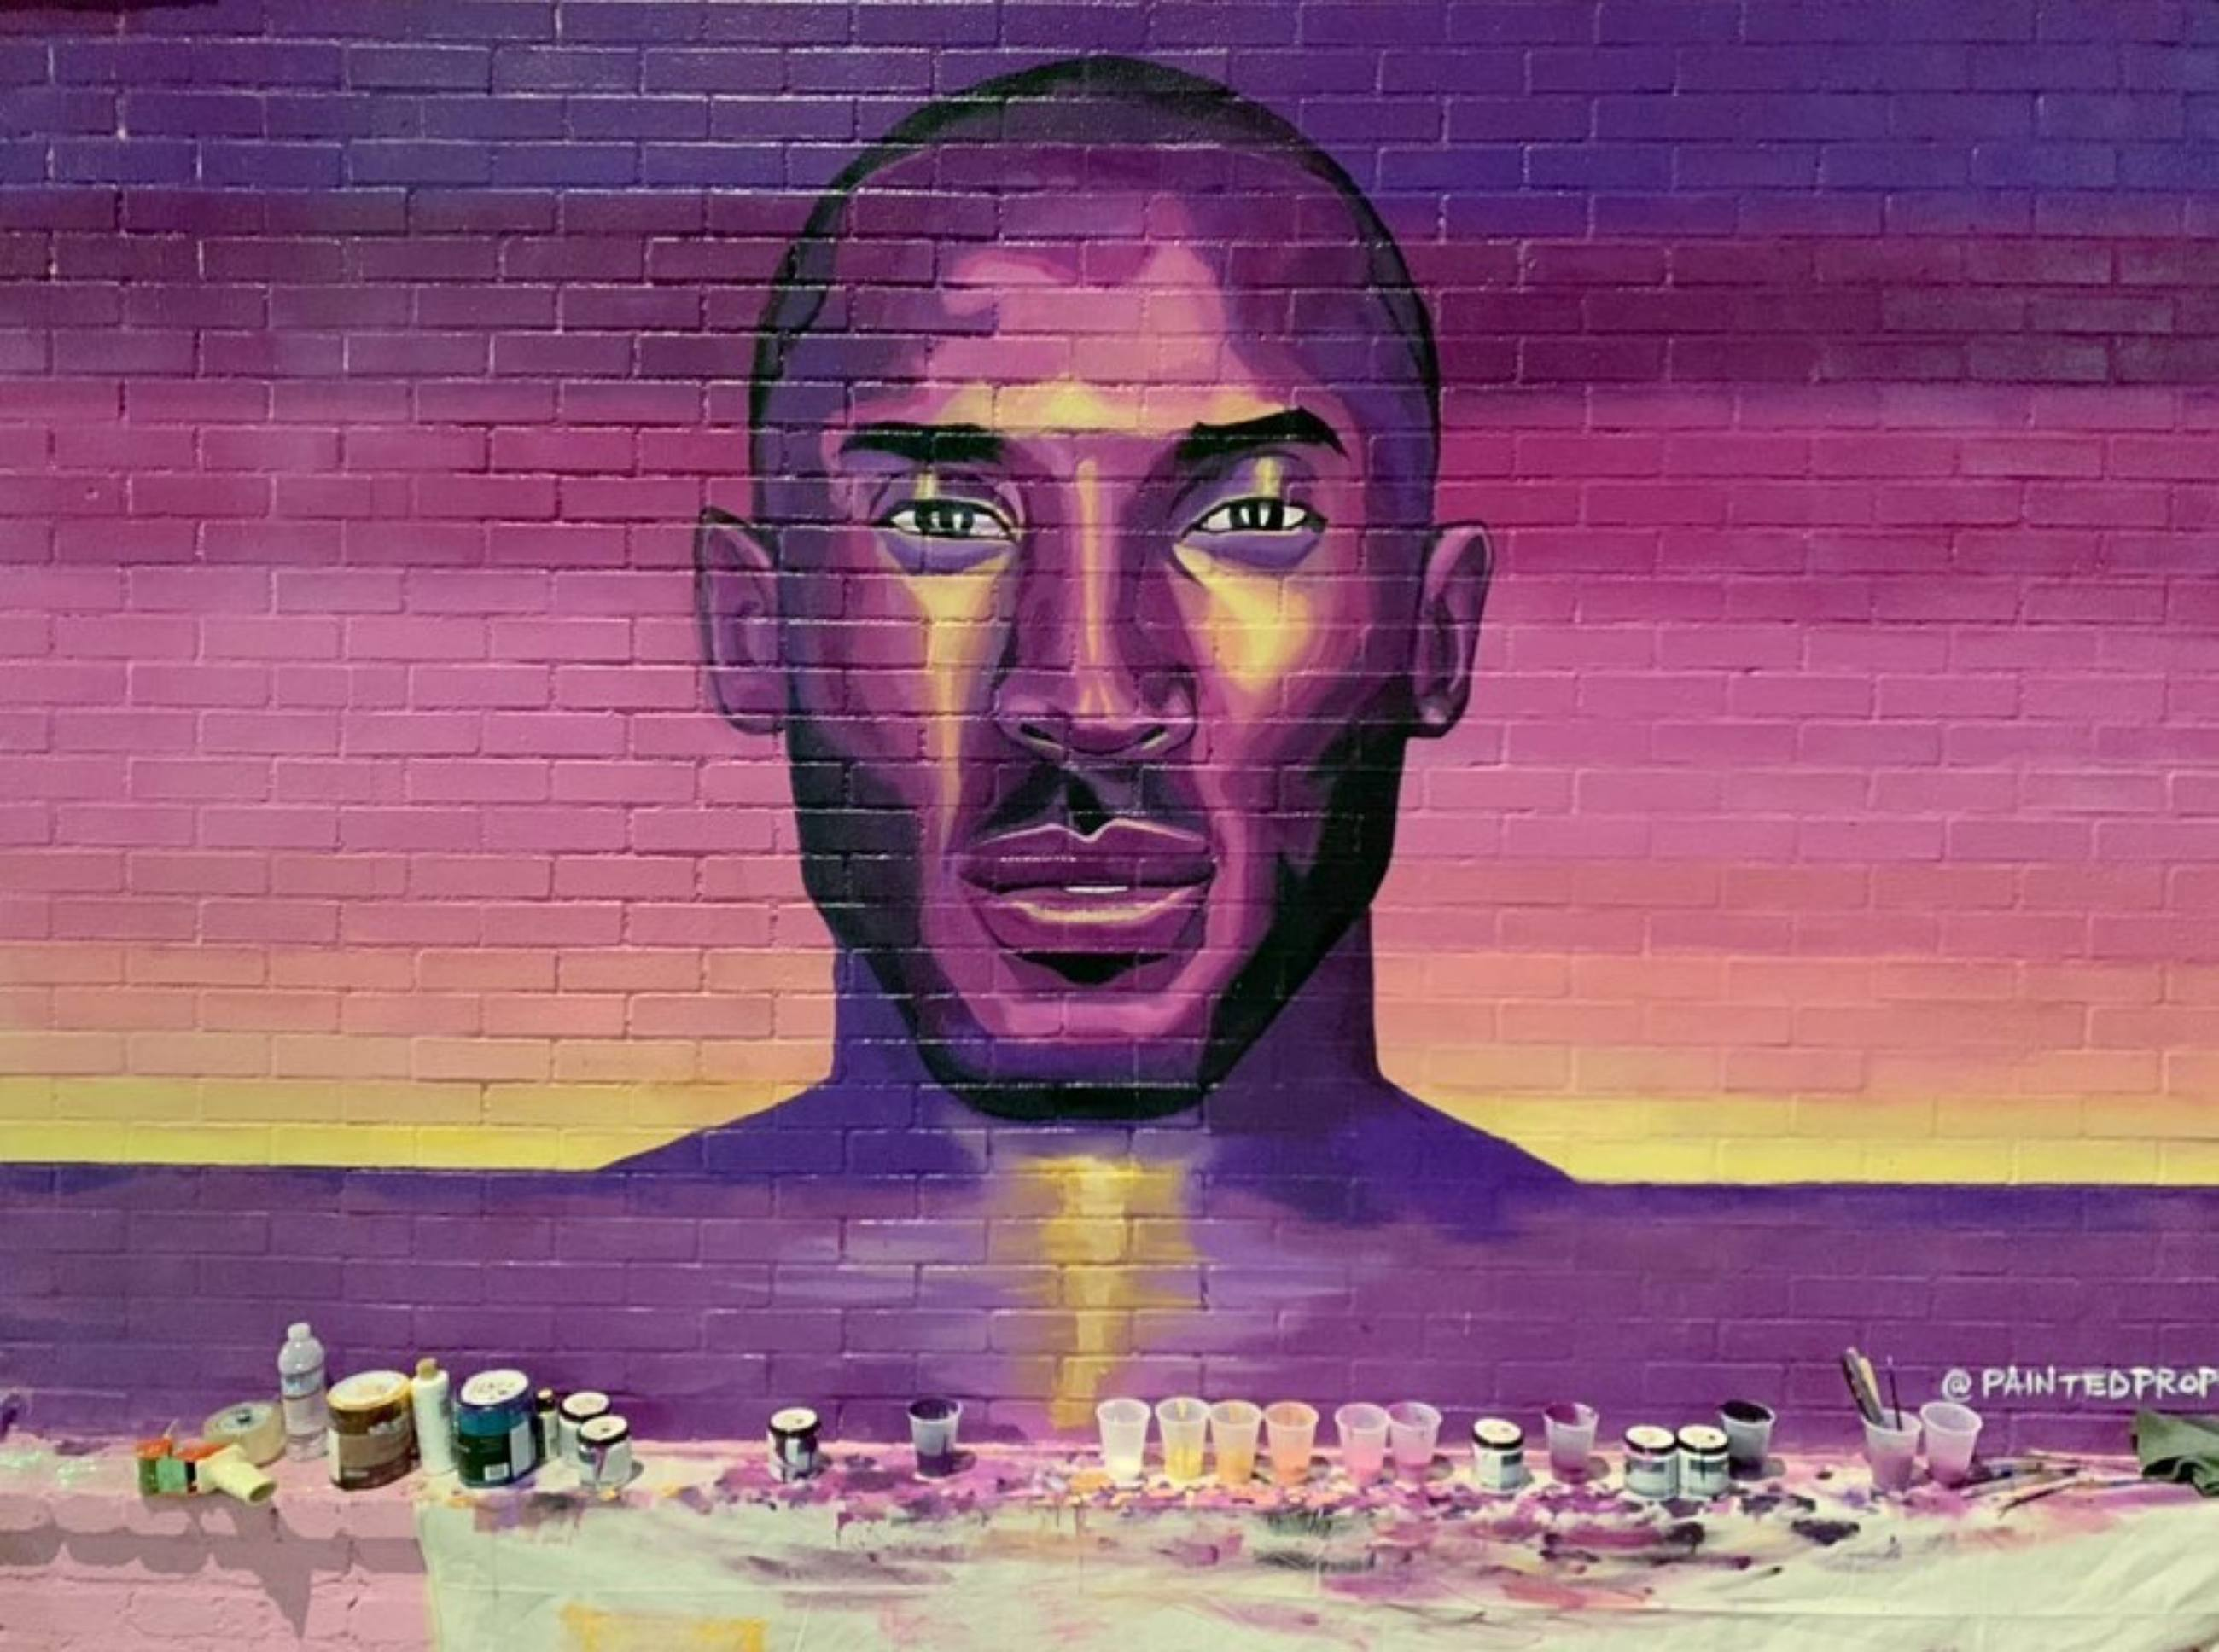 Kobe Bryant mural by Painted Prophet at Sorella Boutique (in progress)